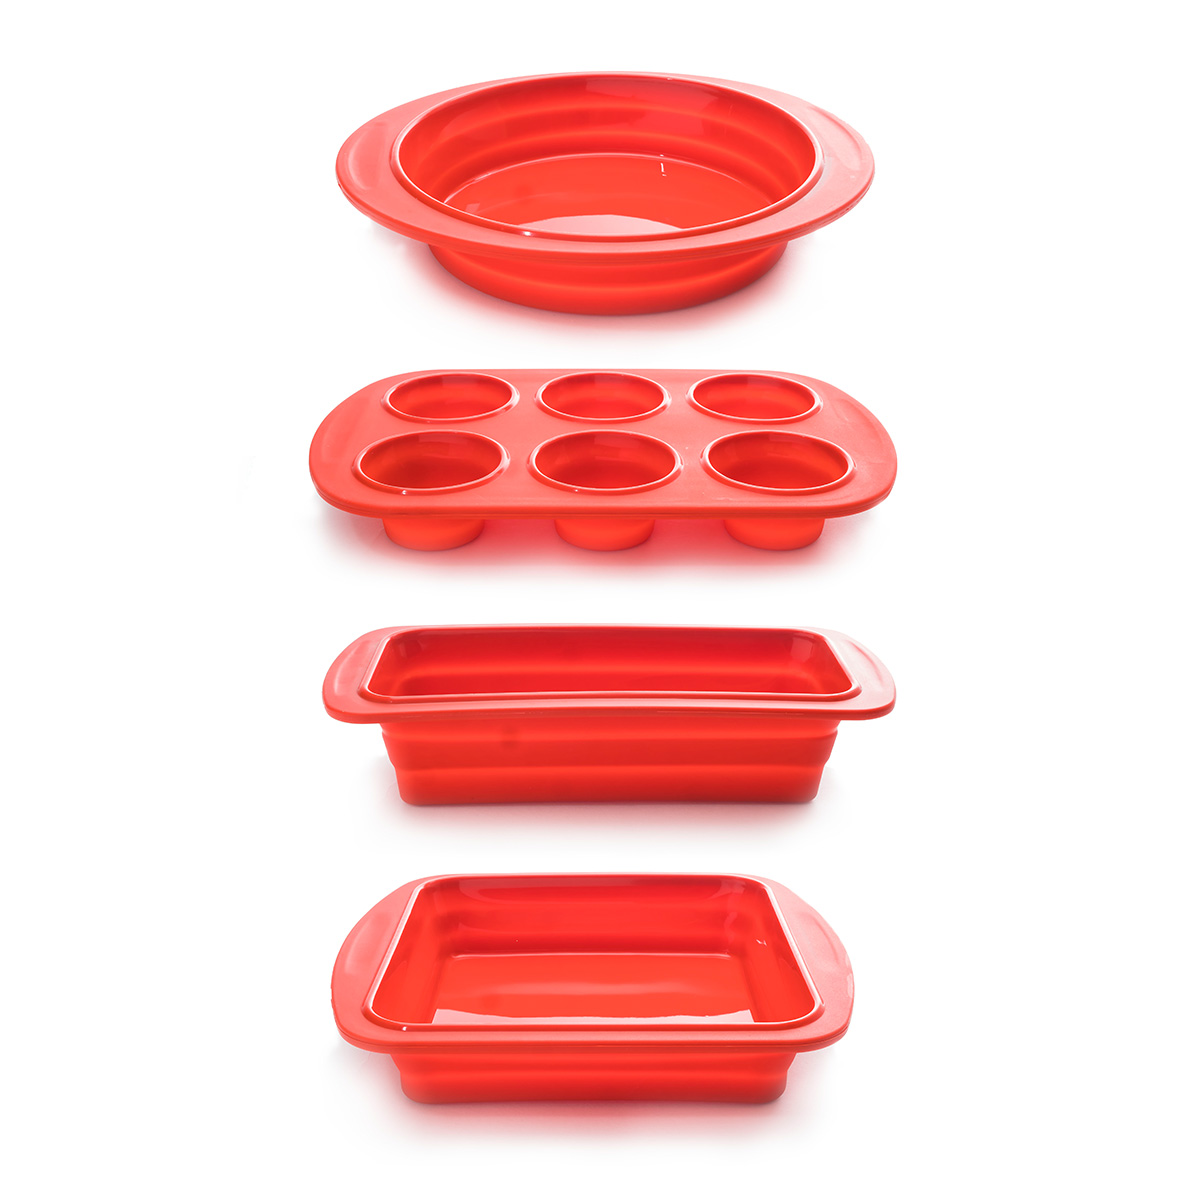 Cook-039-s-Companion-4-Piece-Collapsible-Silicone-Bakeware-Set thumbnail 10